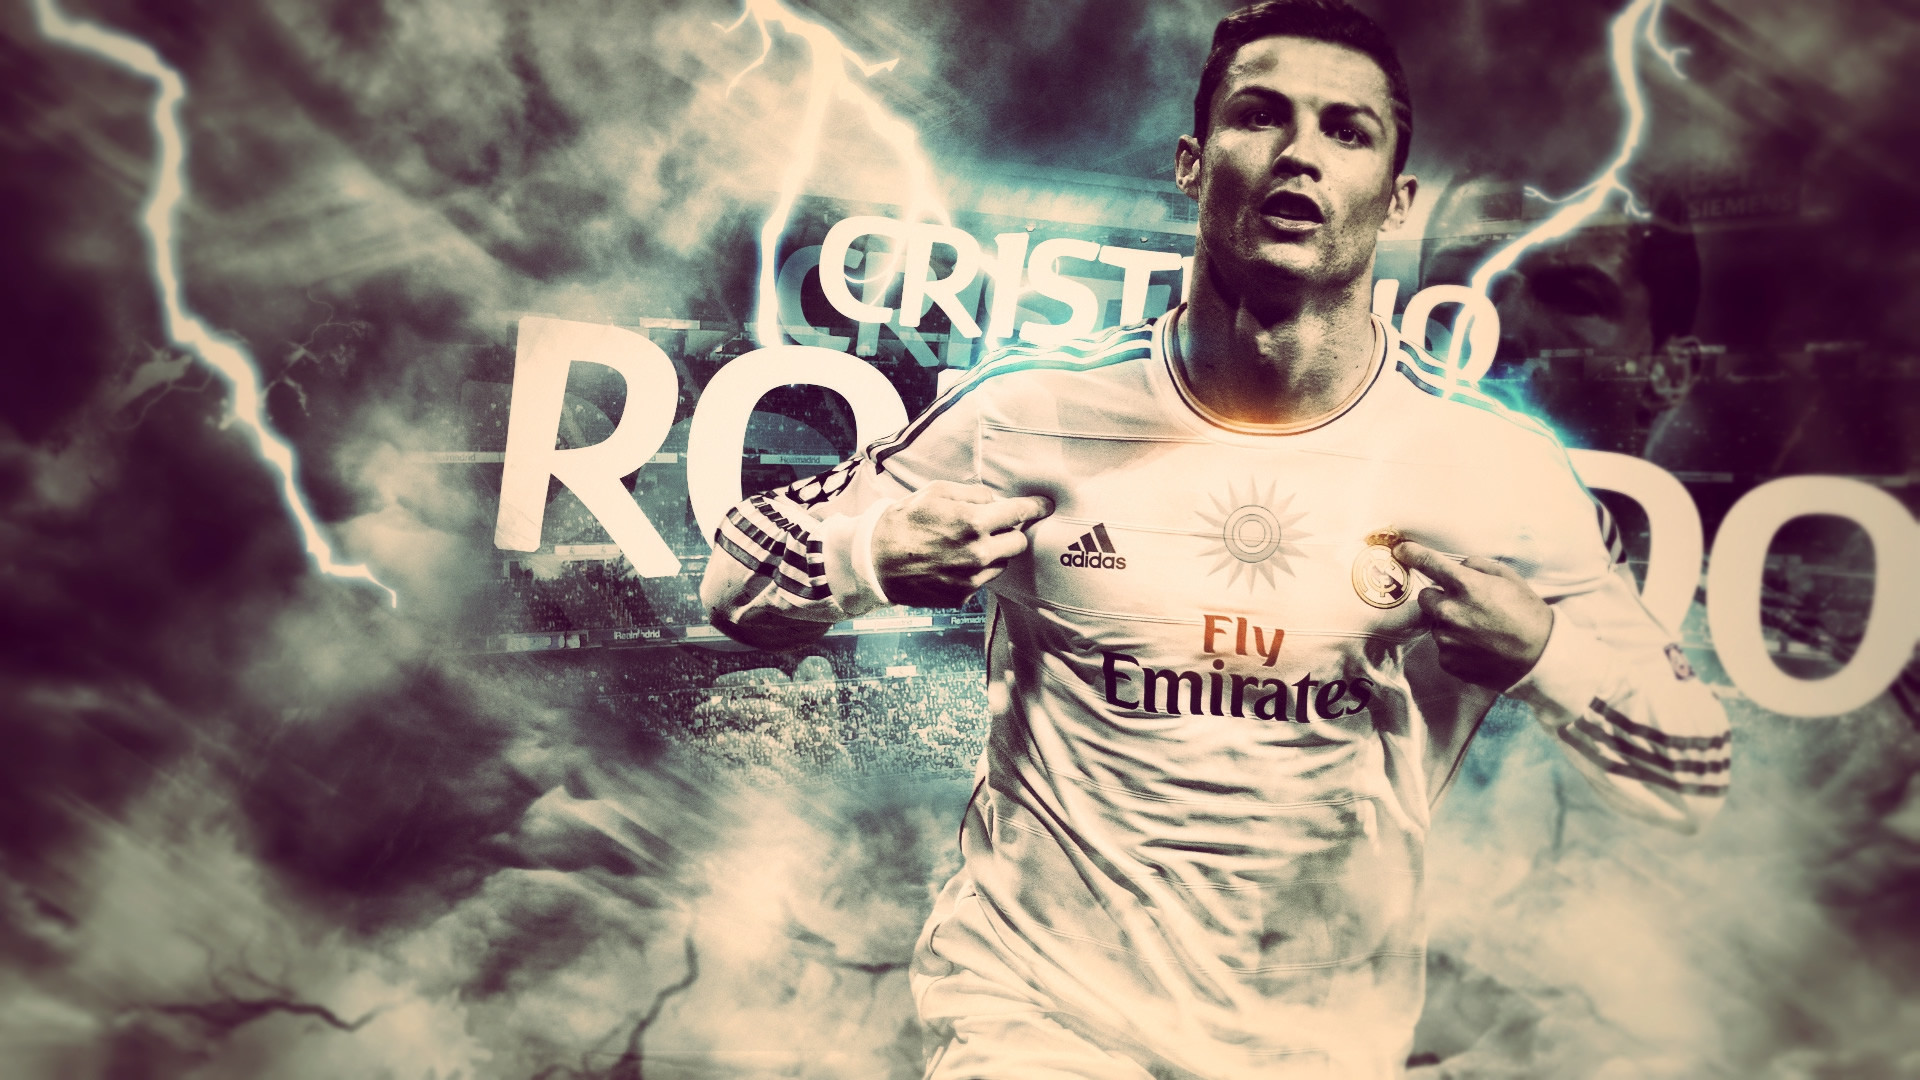 1920x1080 Live Cristiano Ronaldo Wallpapers | Cristiano Ronaldo Wallpapers Collection